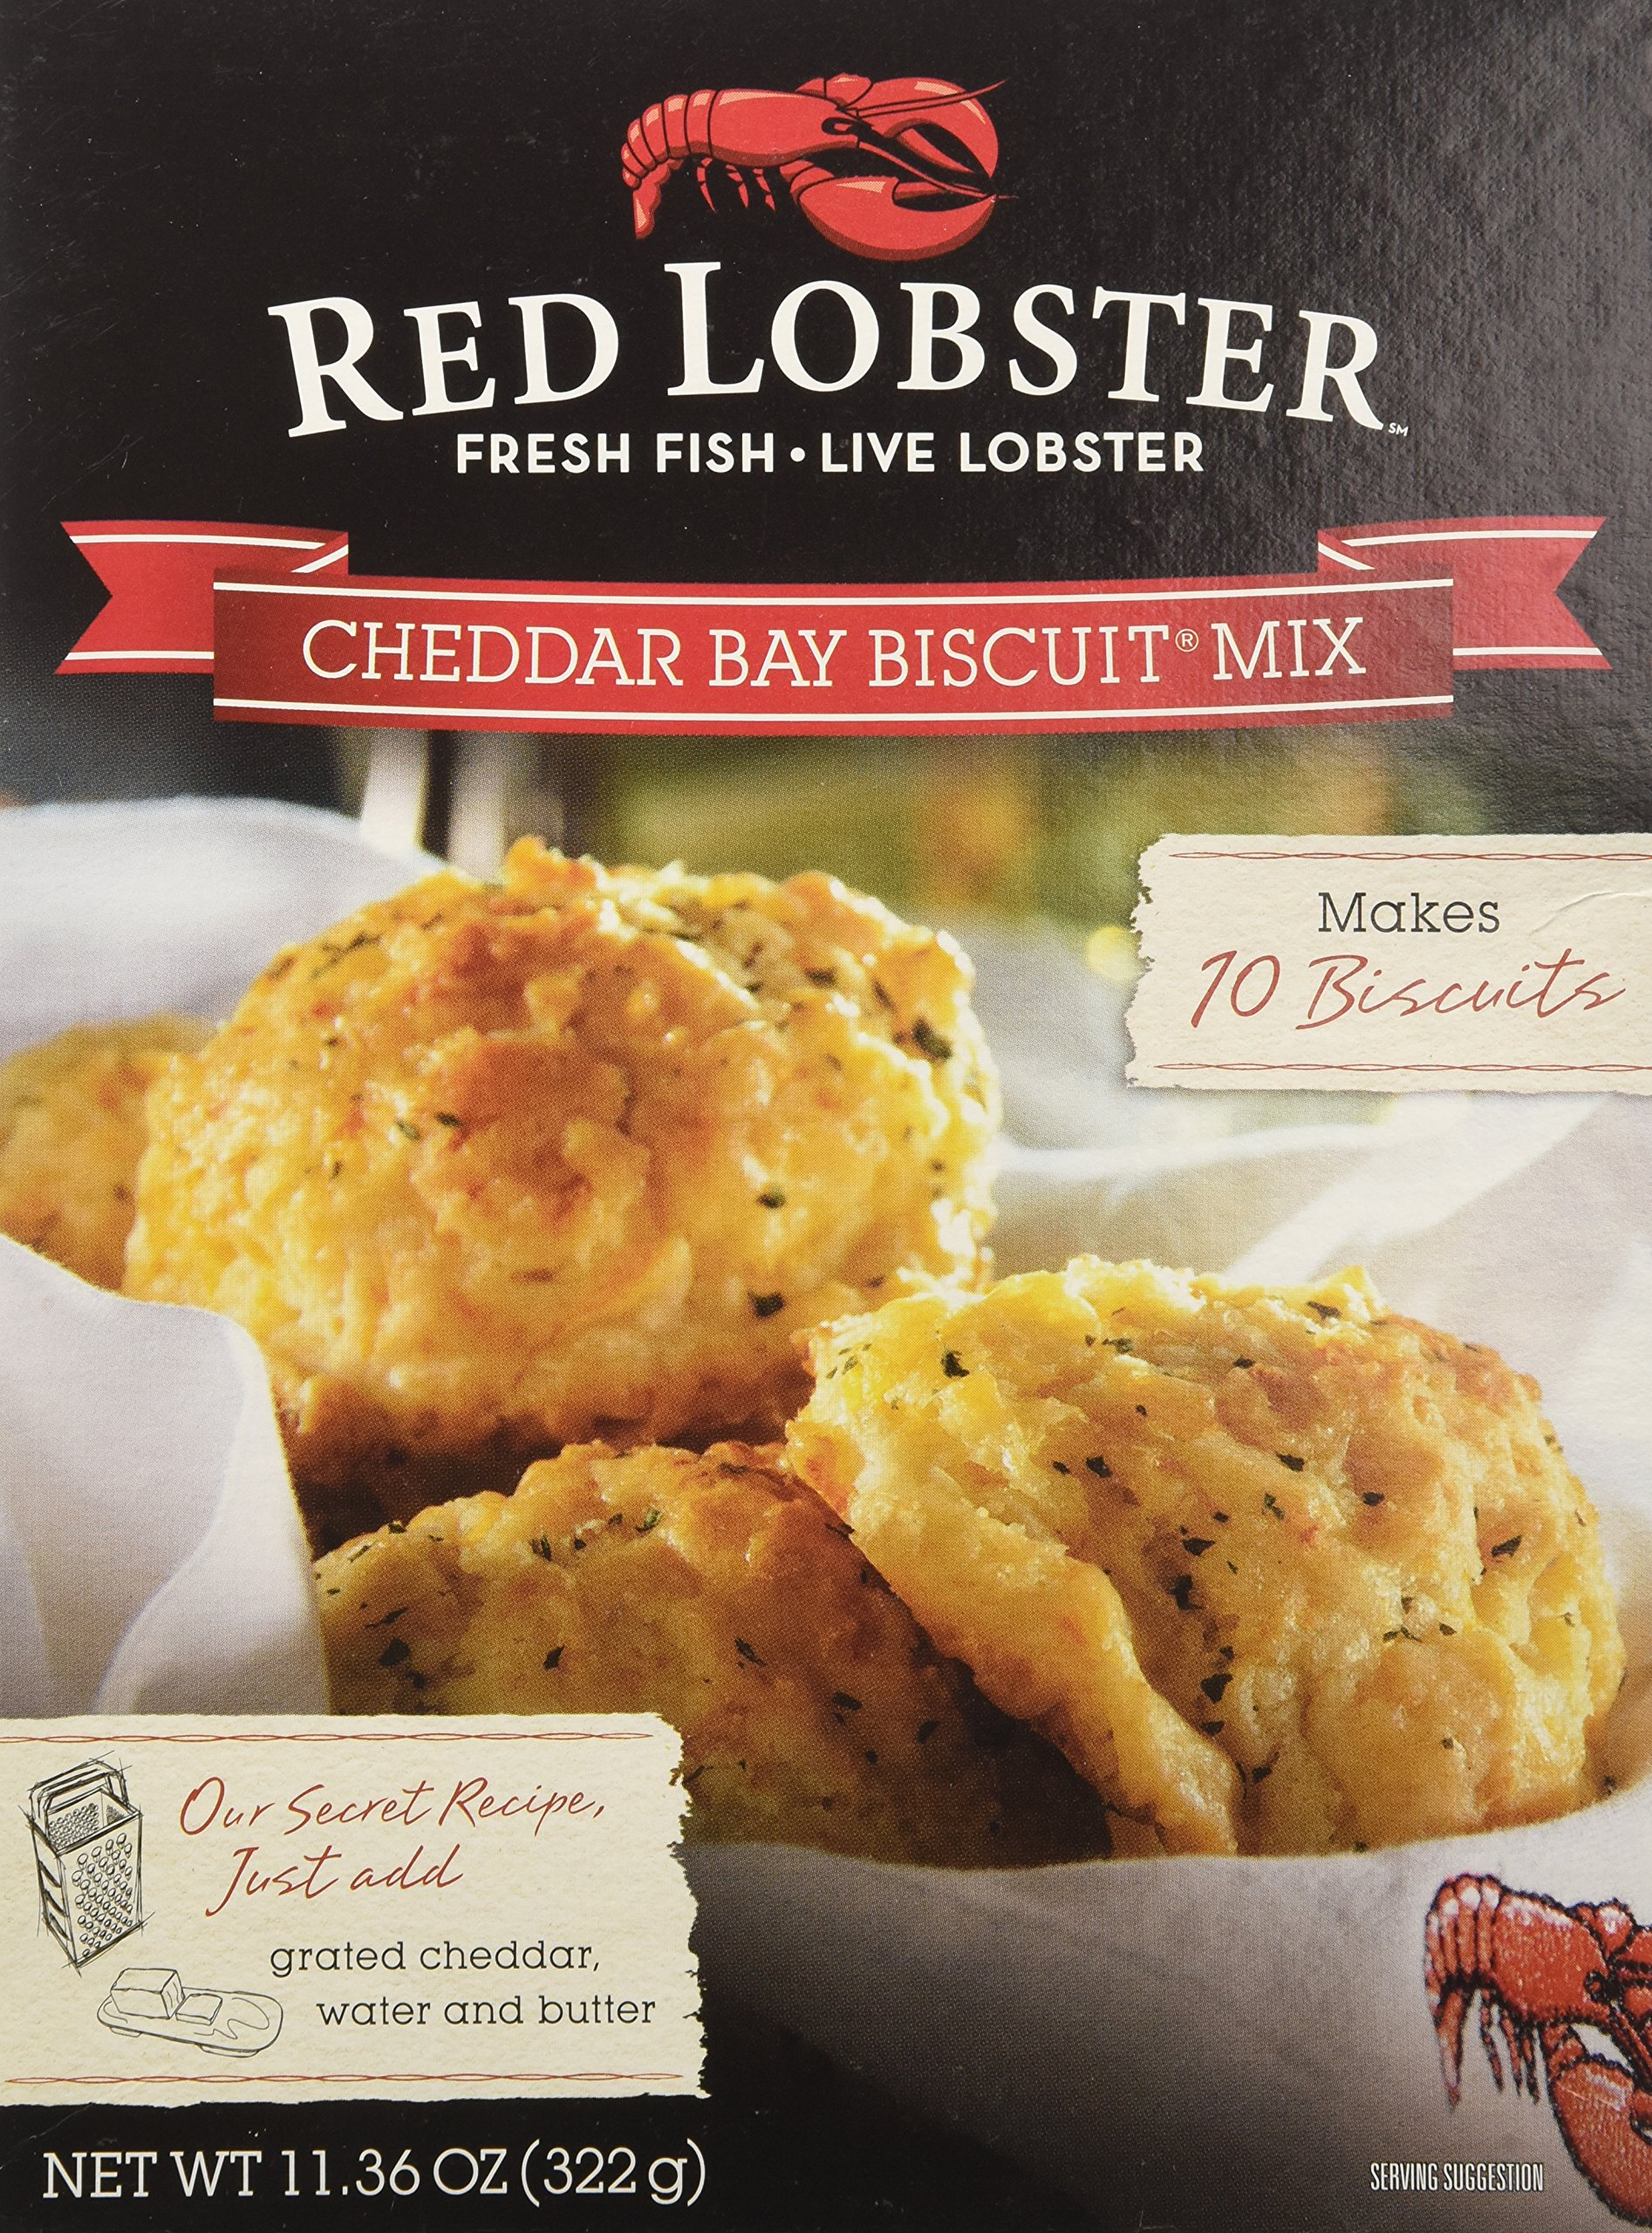 Red Lobster, Cheddar Bay Biscuit Mix, 11.36oz Box (Pack of 3) by Red Lobster Cheddar Bay Biscuits